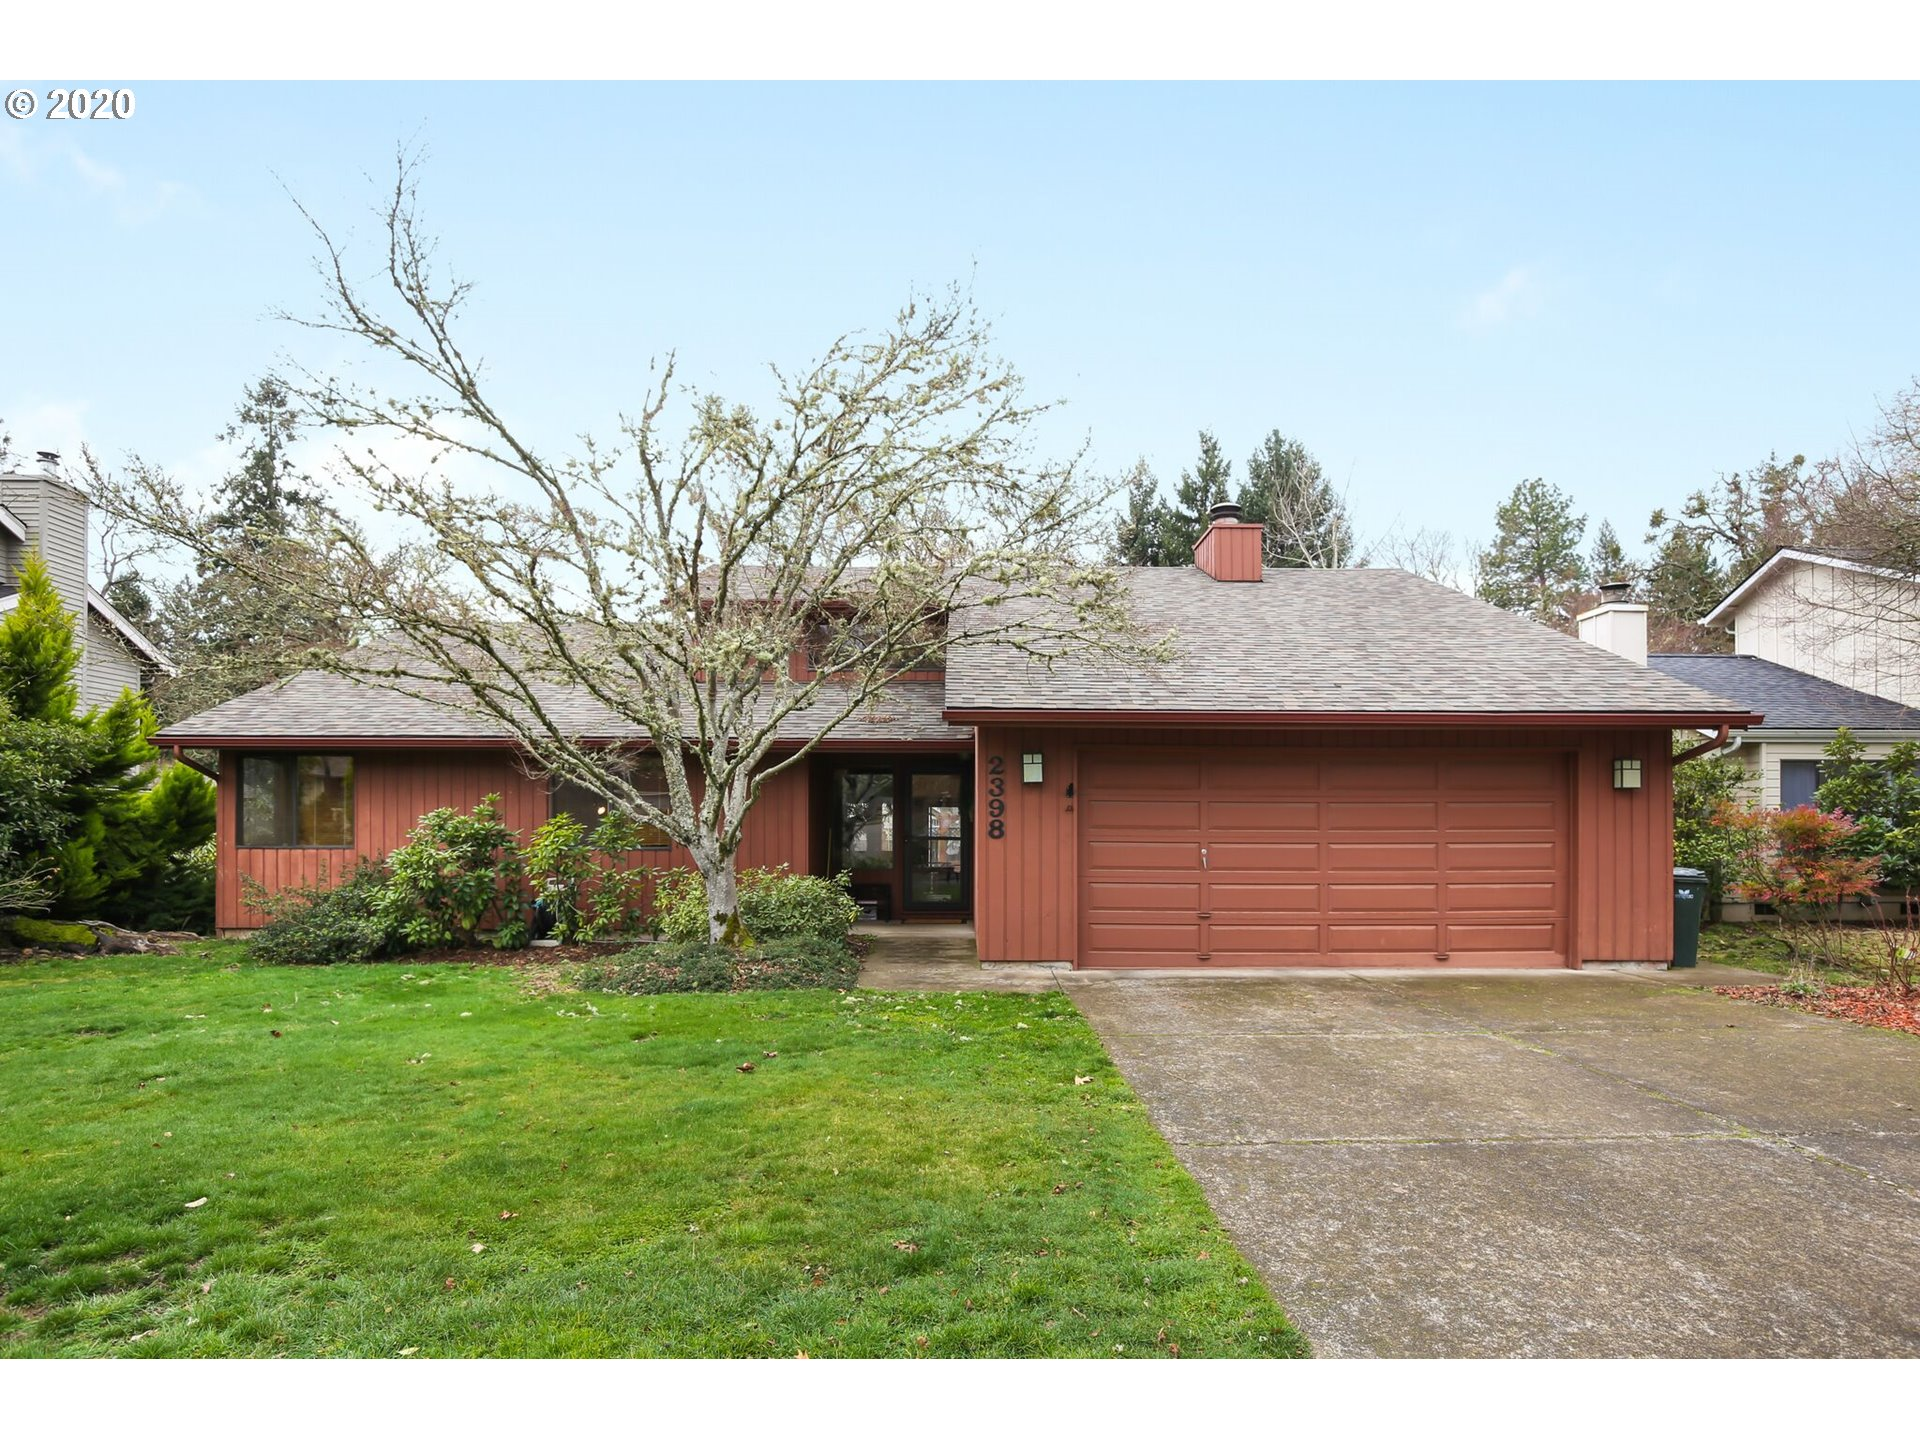 2398 STANSBY WAY, Eugene OR 97405